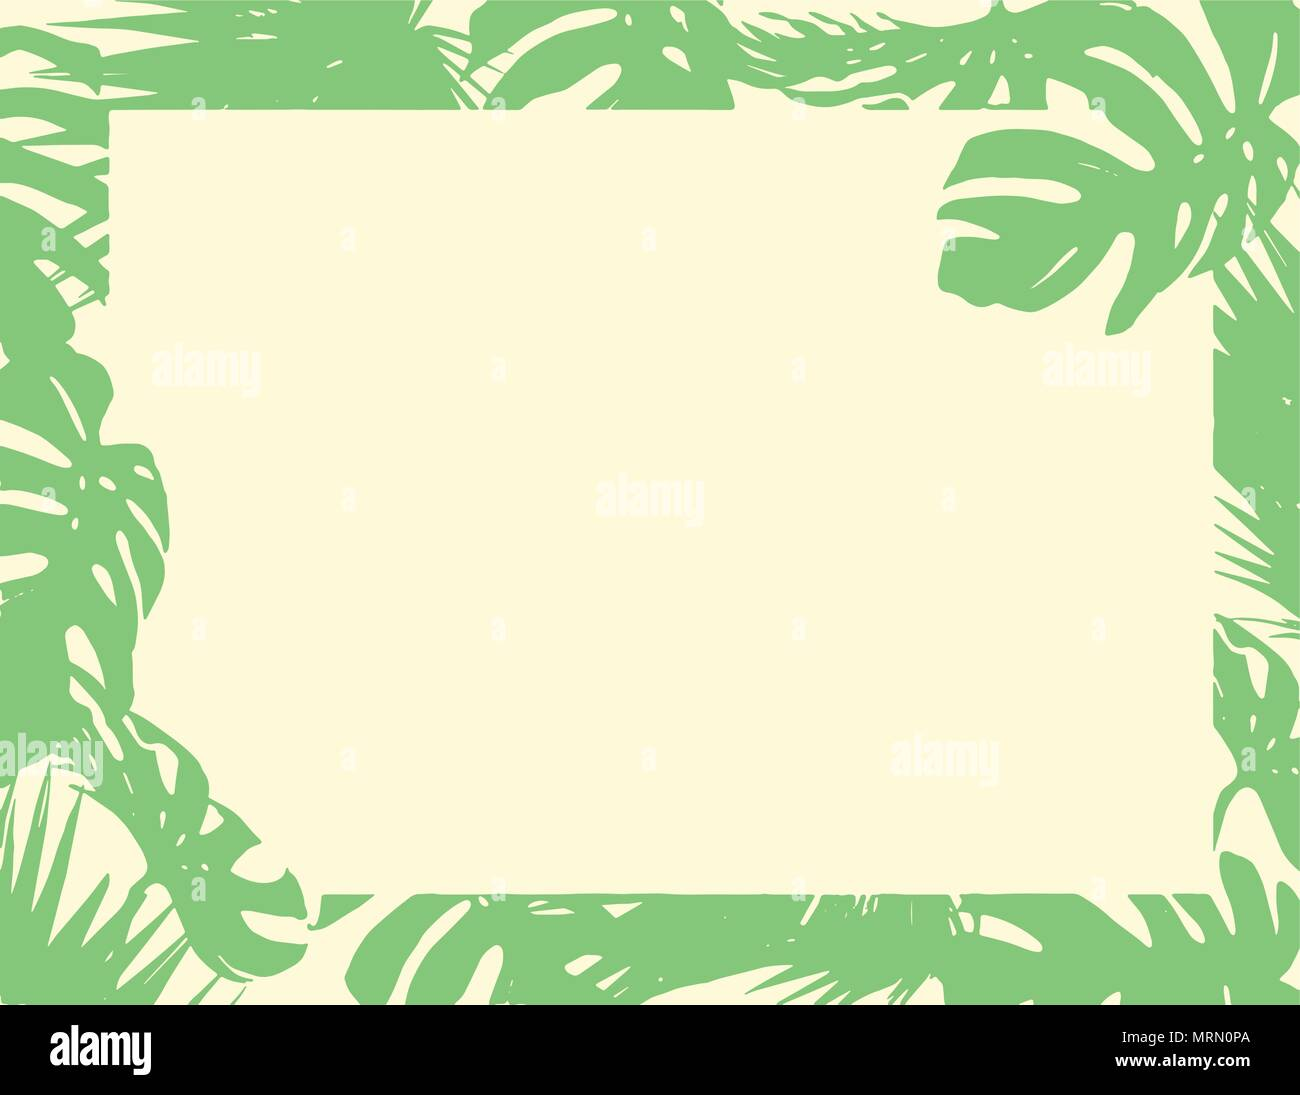 the flat green natural leaves border blank paper summer background